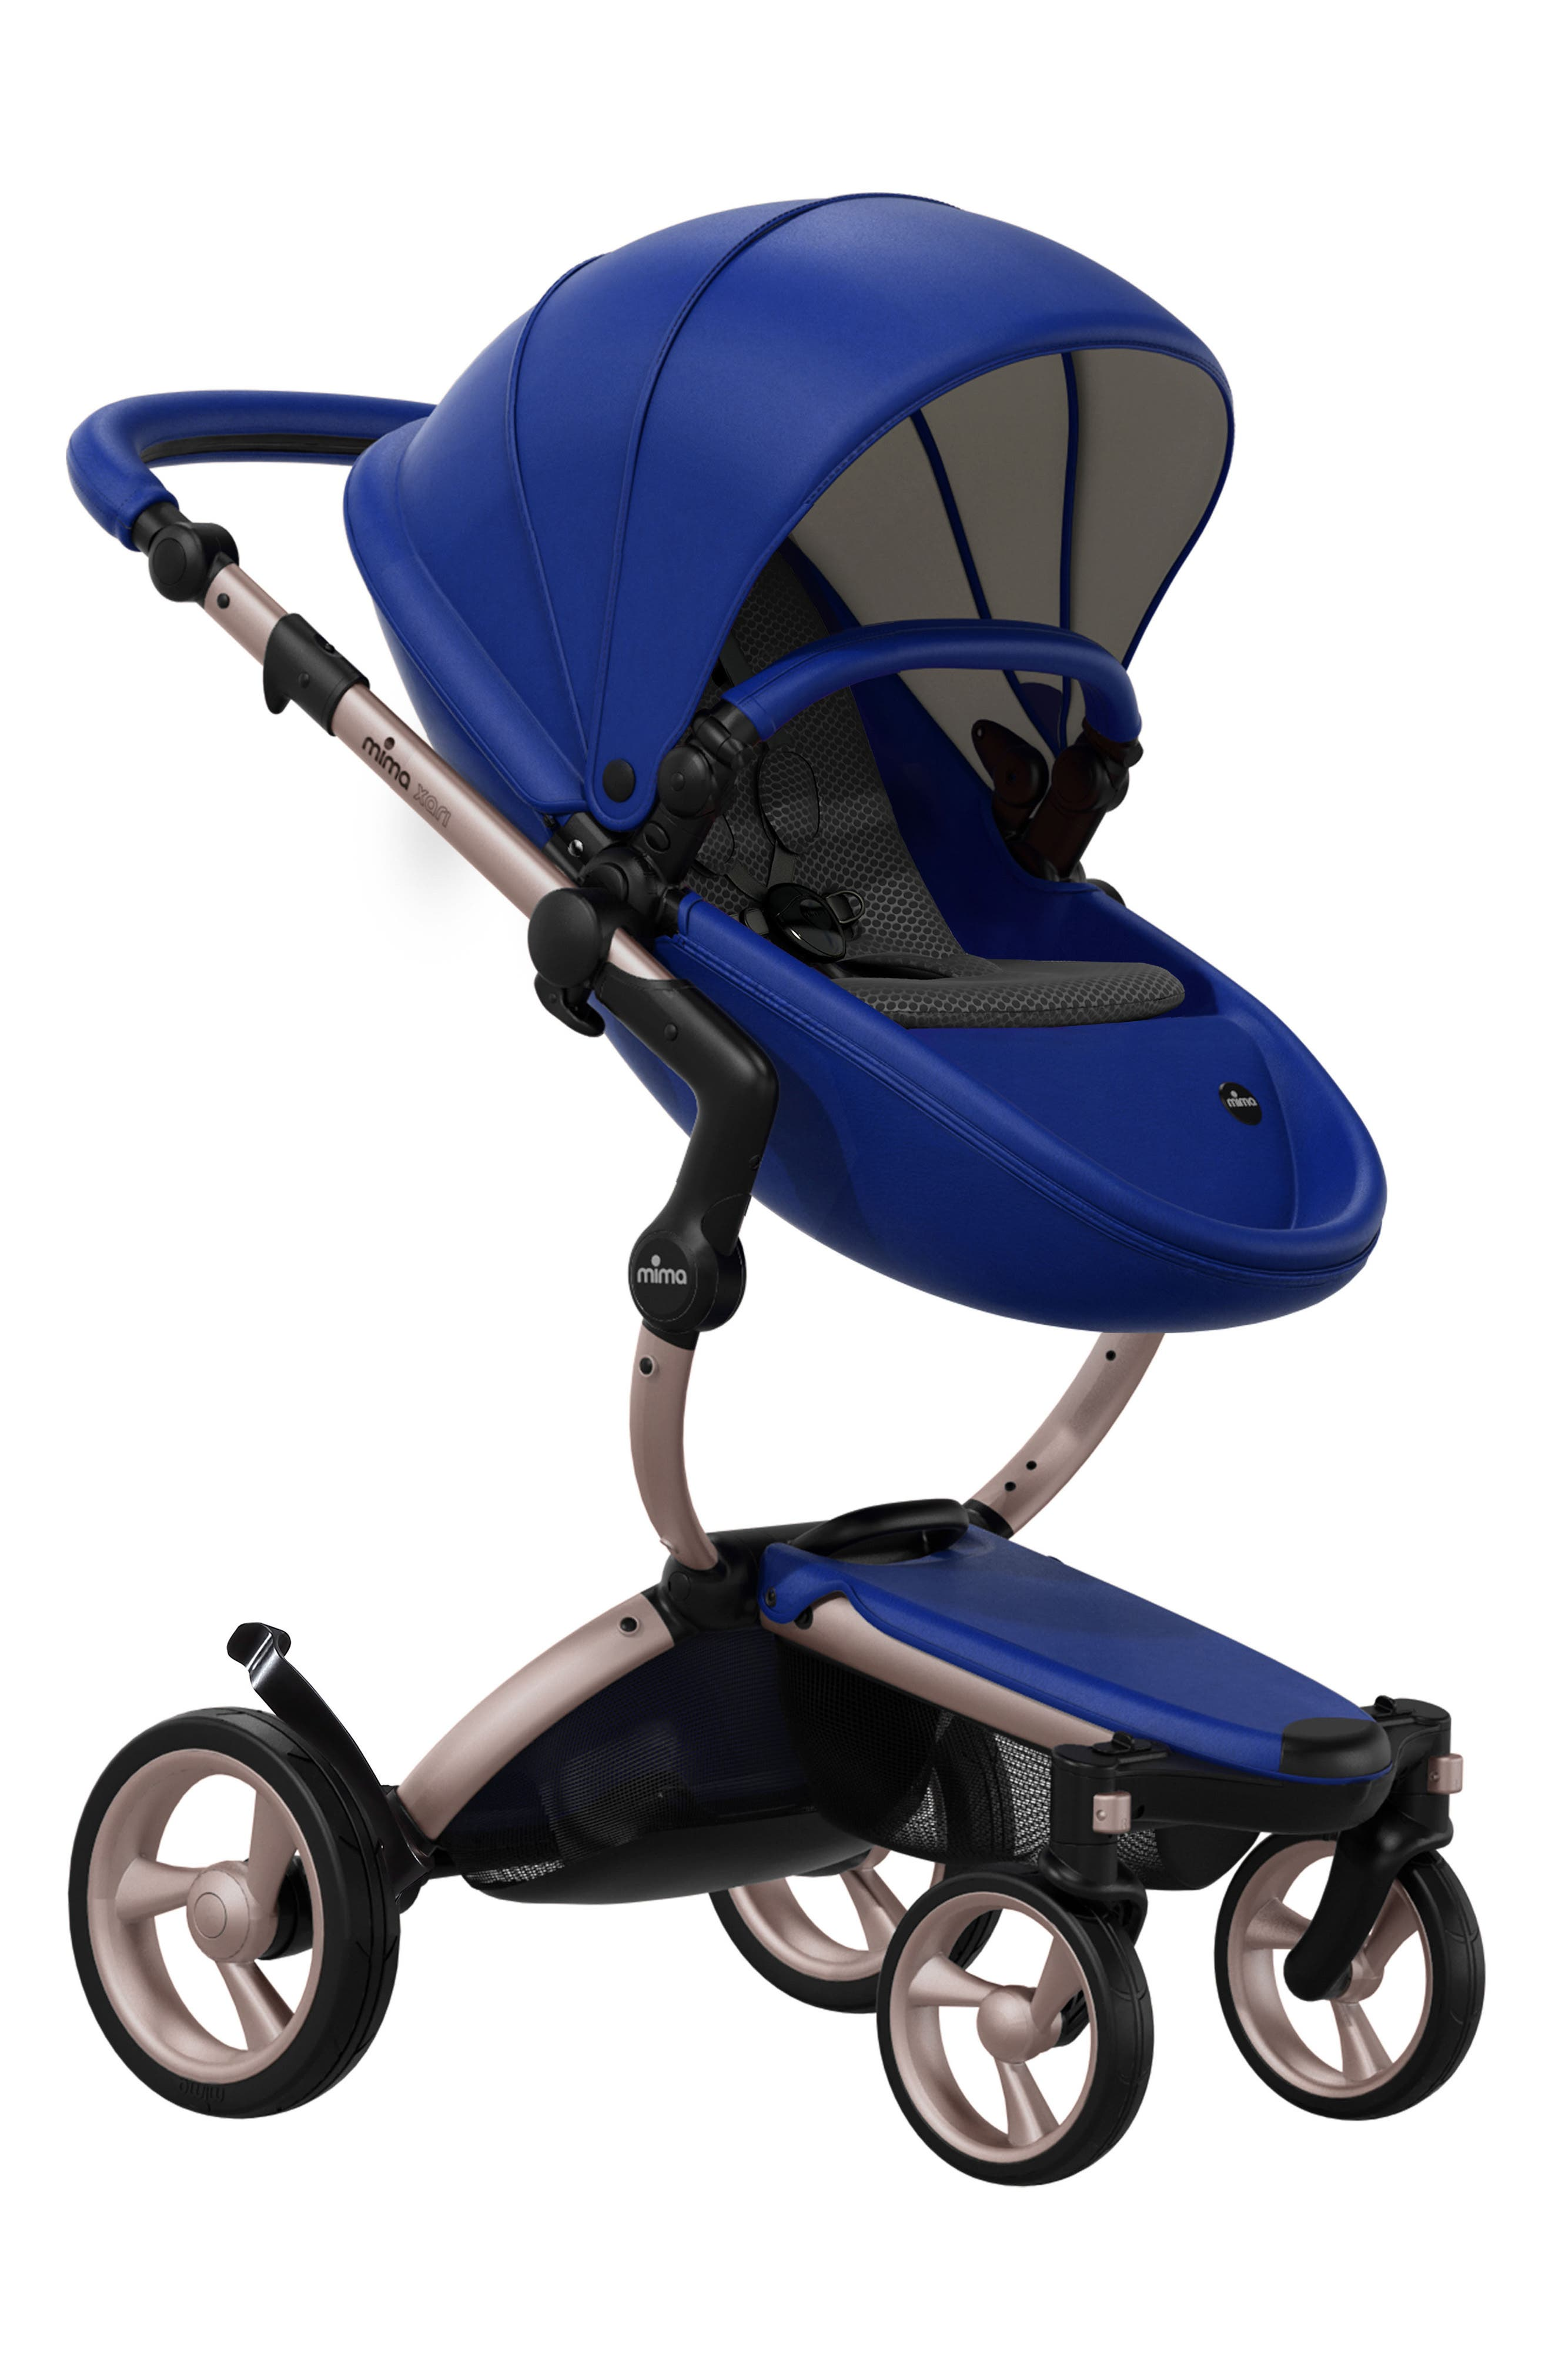 Xari Rose Gold Chassis Stroller with Reversible Reclining Seat & Carrycot,                             Main thumbnail 1, color,                             Royal Blue/ Black